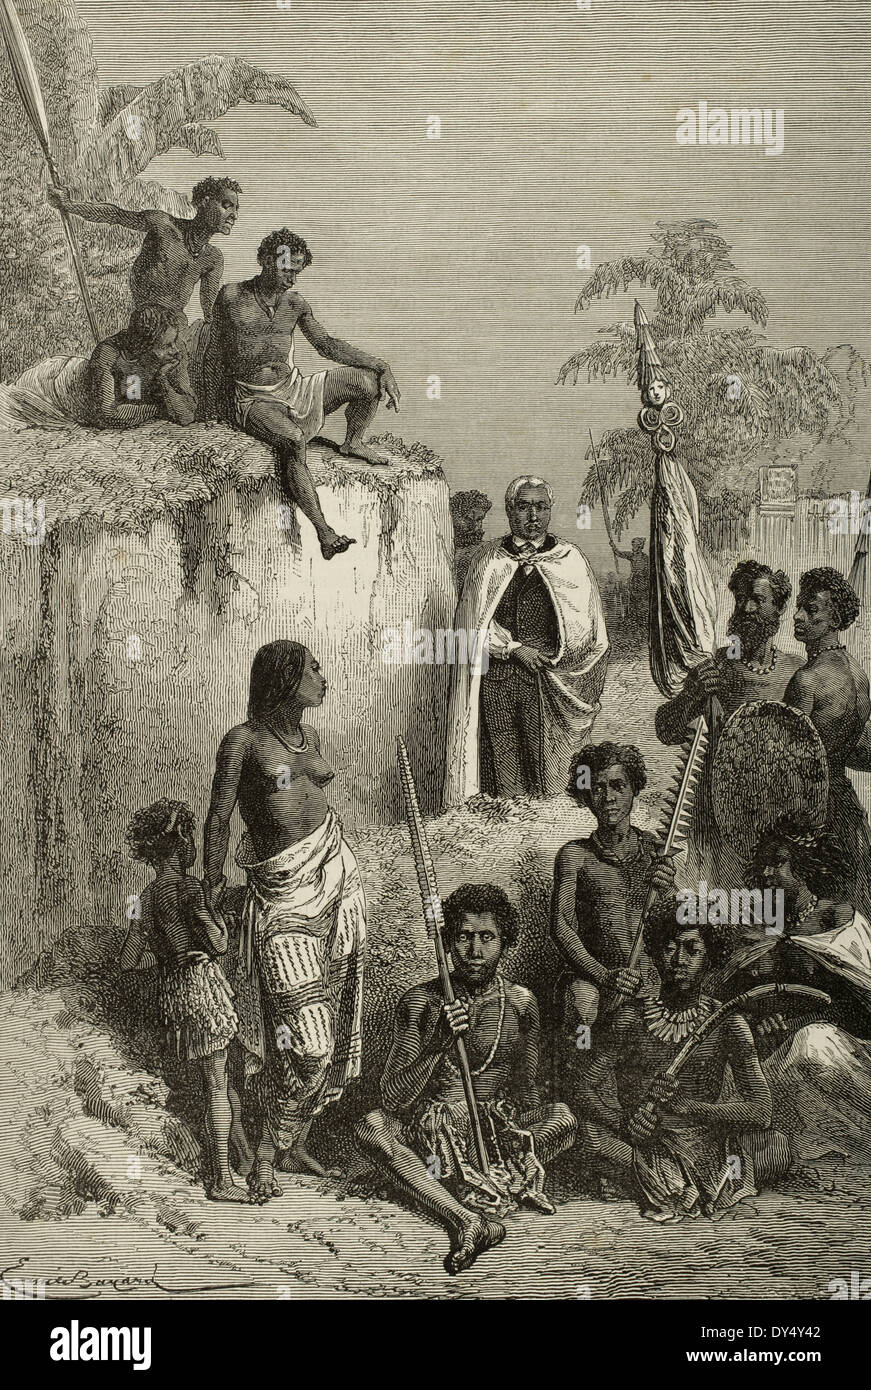 Kamehameha I (1758-1819). King of Hawaii Island. Hawaiians, 1819.  Kamehameha and his warriors.